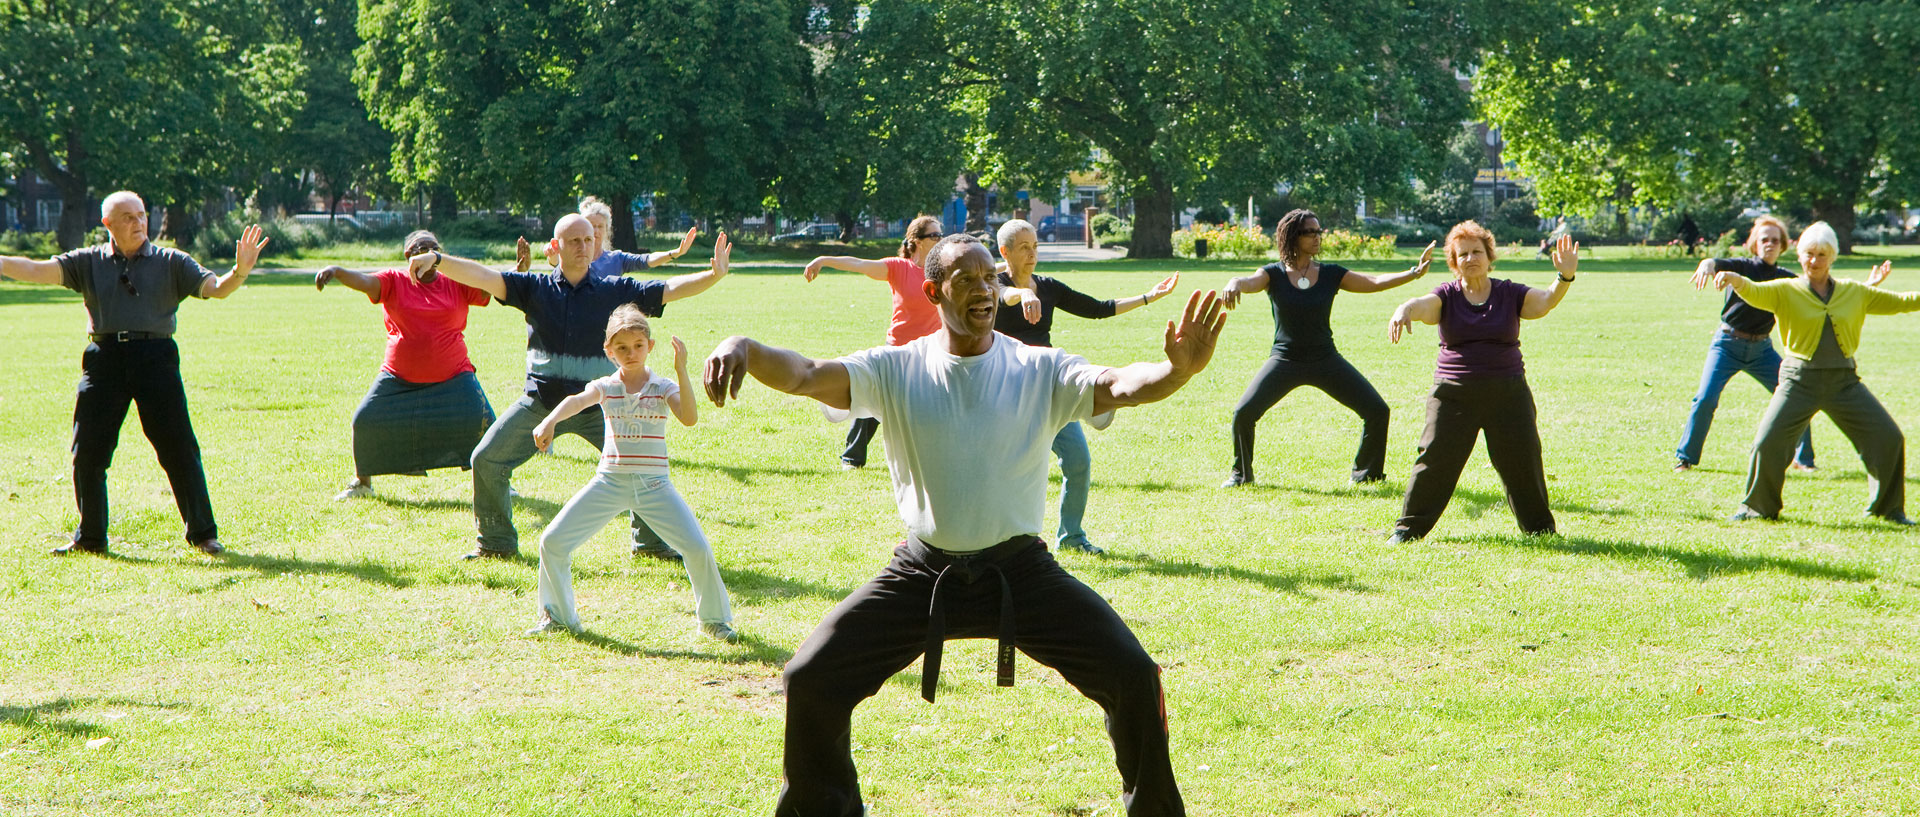 group of people doing tai chi